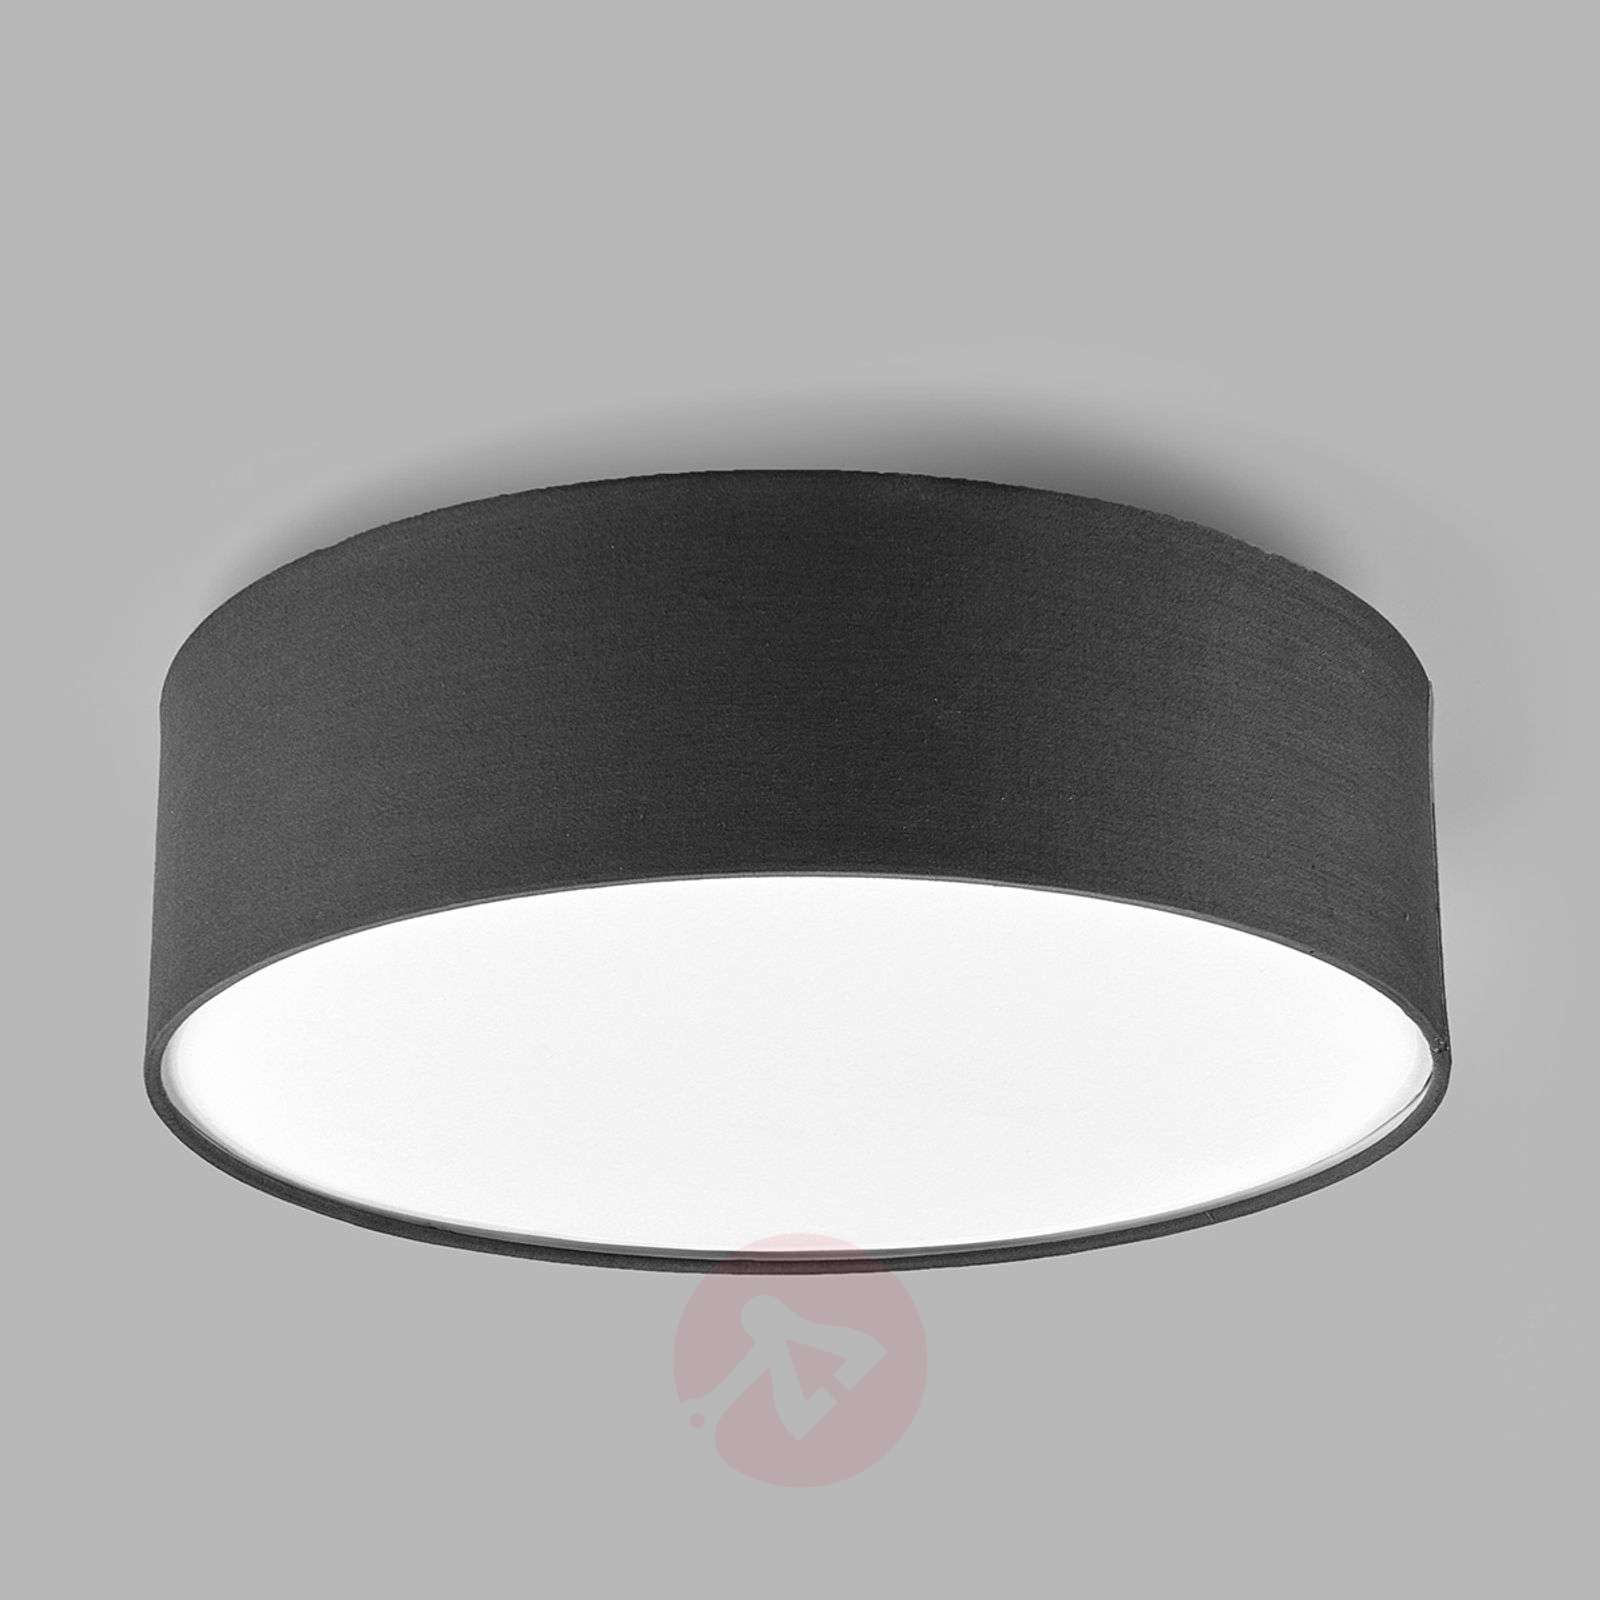 Grey fabric ceiling light Sebatin-9620334-01